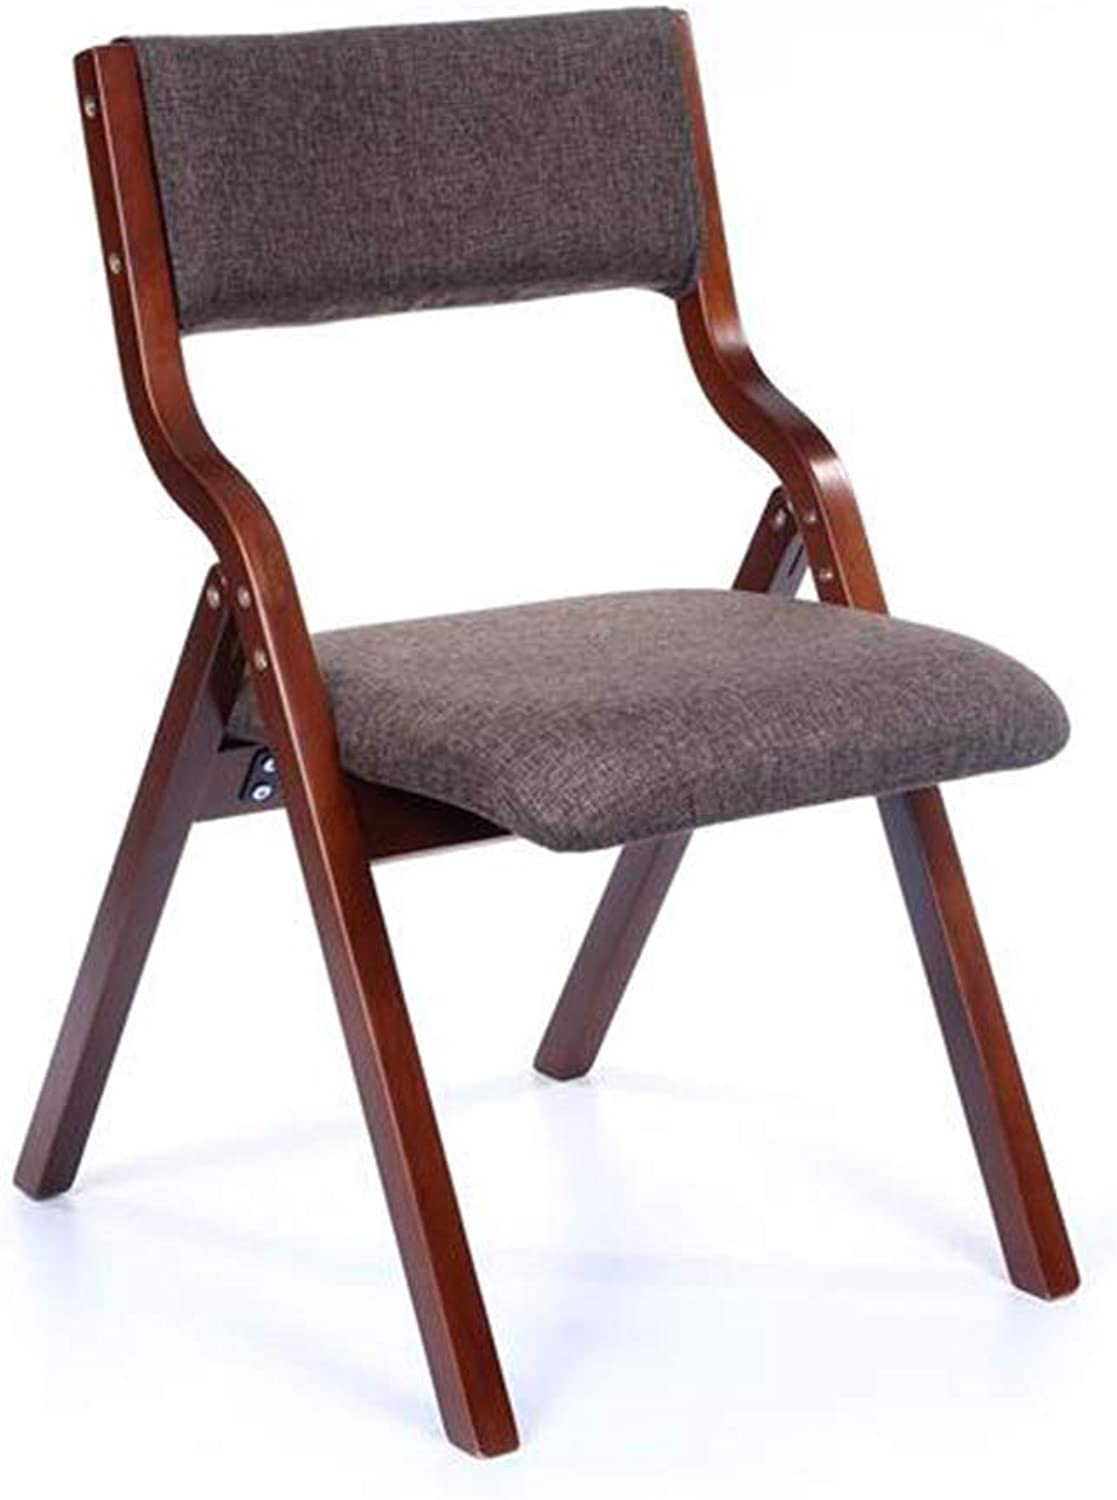 XUERUI Chairs Folding Chair Bent Wood Frame Linen PU Fabric Padded Office Computer Chair Back Rest Chairs No Assembly Required Furniture (color   T12)